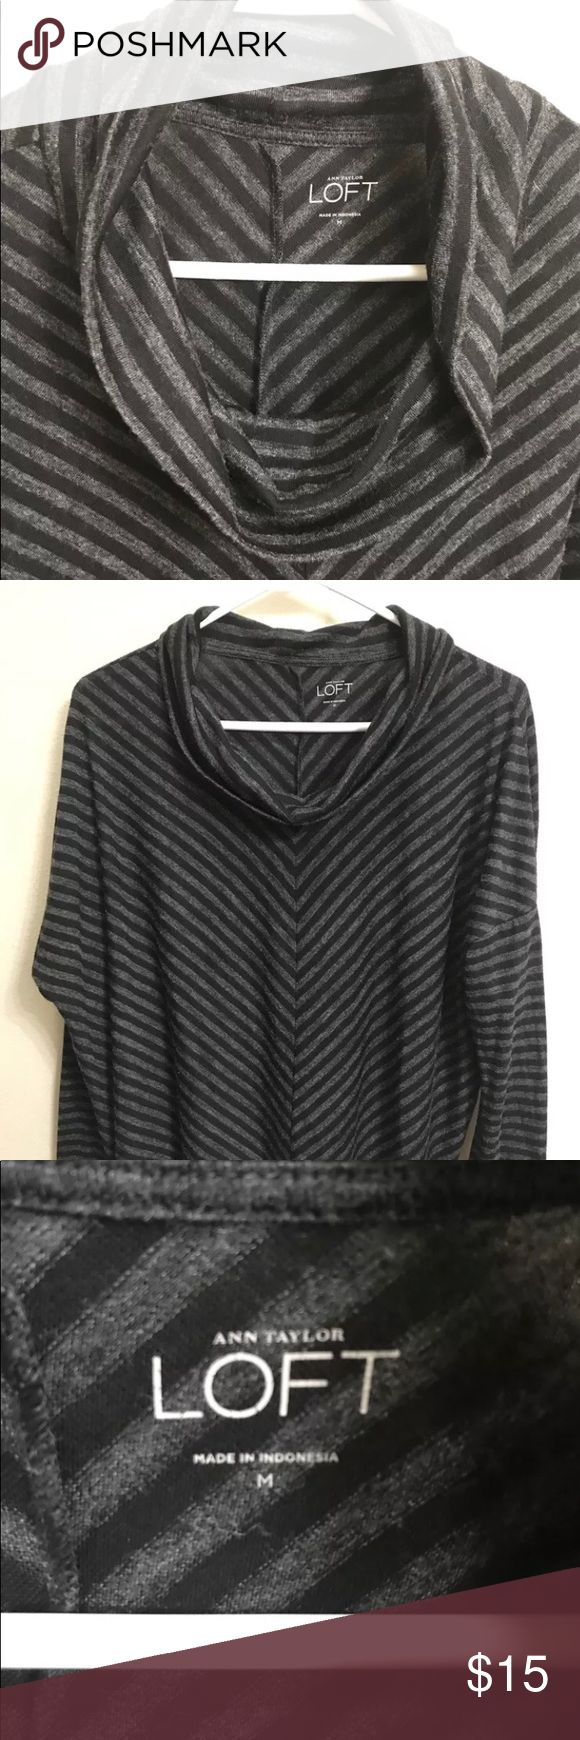 Ann Taylor Loft Cowl Neck Lightweight Sweater ANN TAYLOR LOFT Women's Cowl Neck Sweater with a Stripe Design in Black & Gray Thin Lightweight Sweater in Polyester & Rayon. SIZE : M  Preowned in Good condition Ann Taylor Sweaters Cowl & Turtlenecks